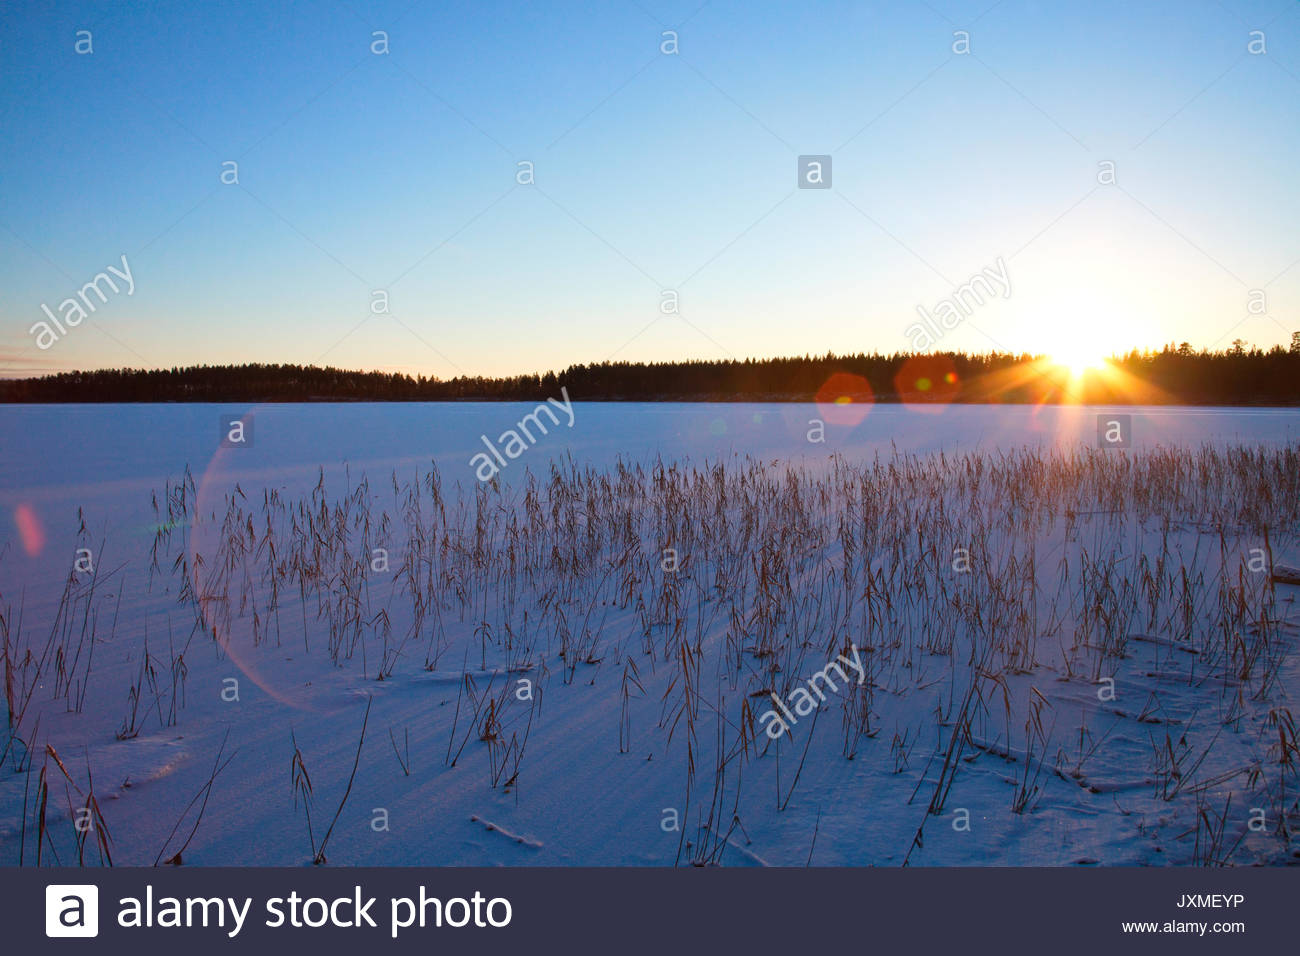 Withered rushes cast shadows on fresh snow. - Stock Image